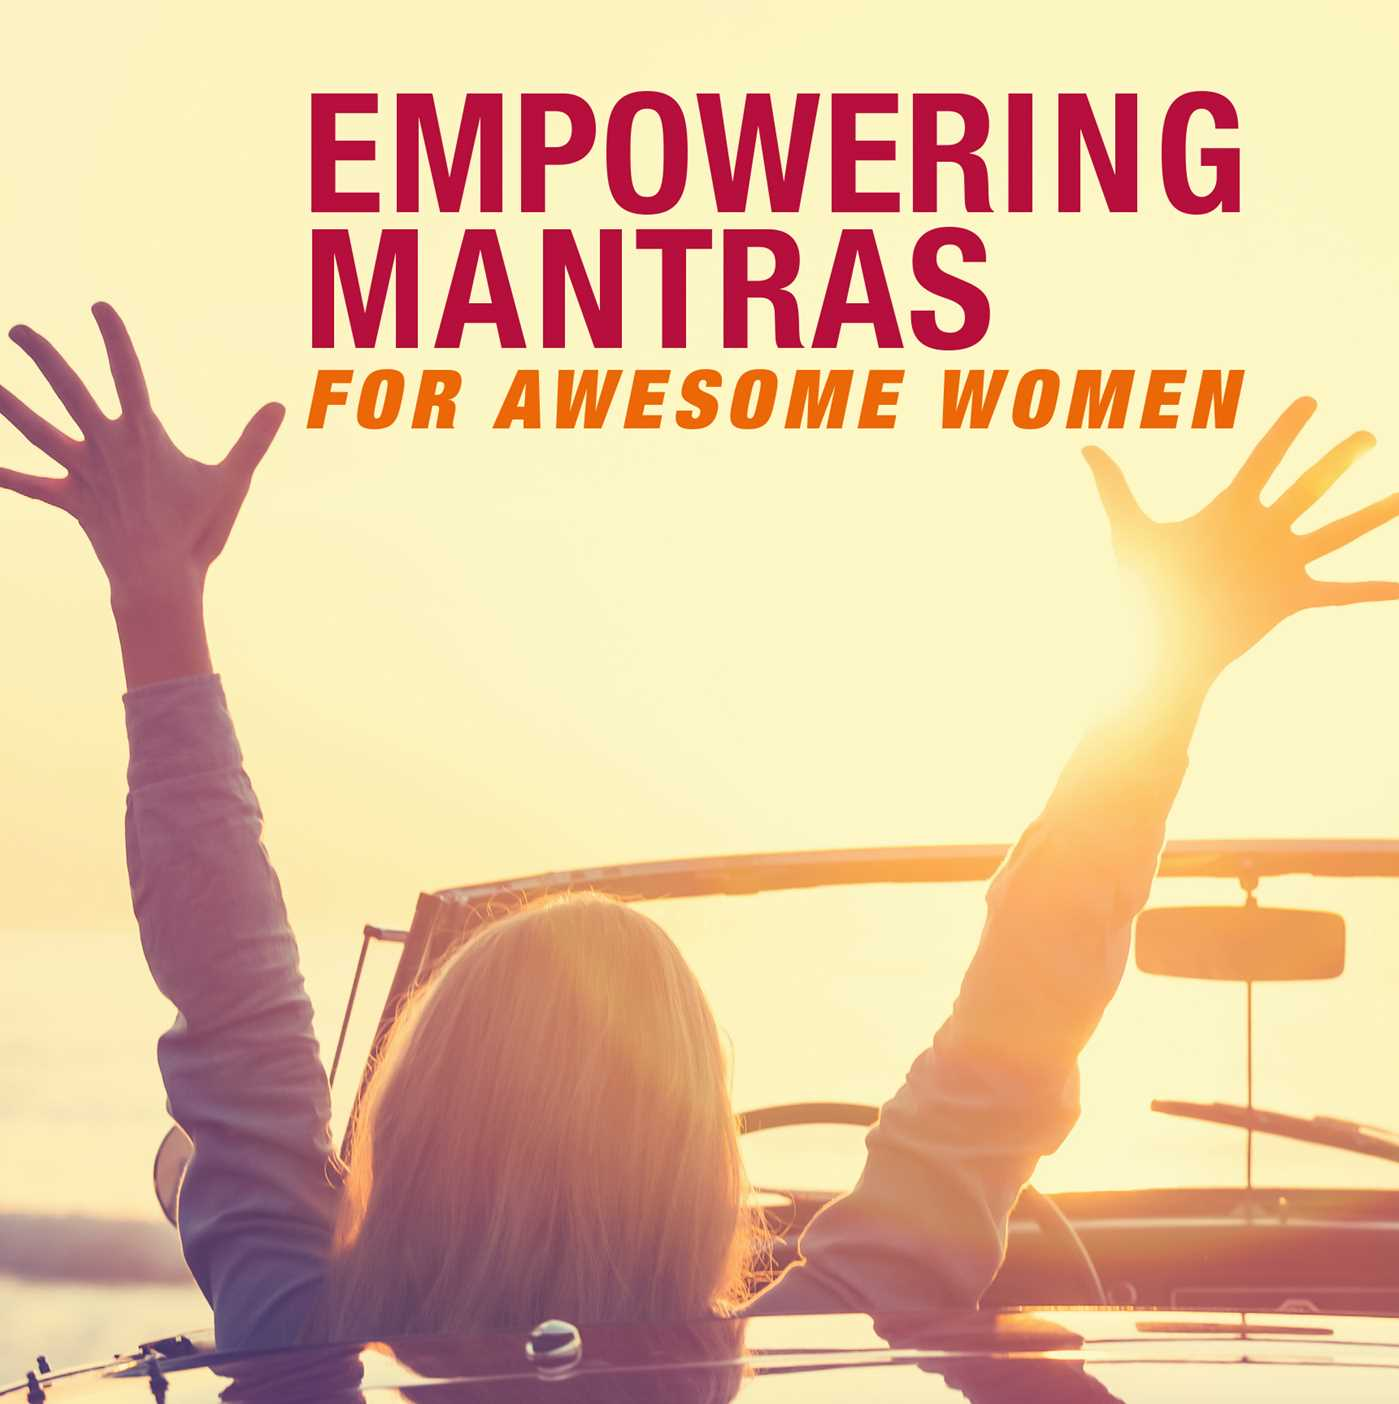 Empowering mantras for awesome women 9781782495666 hr